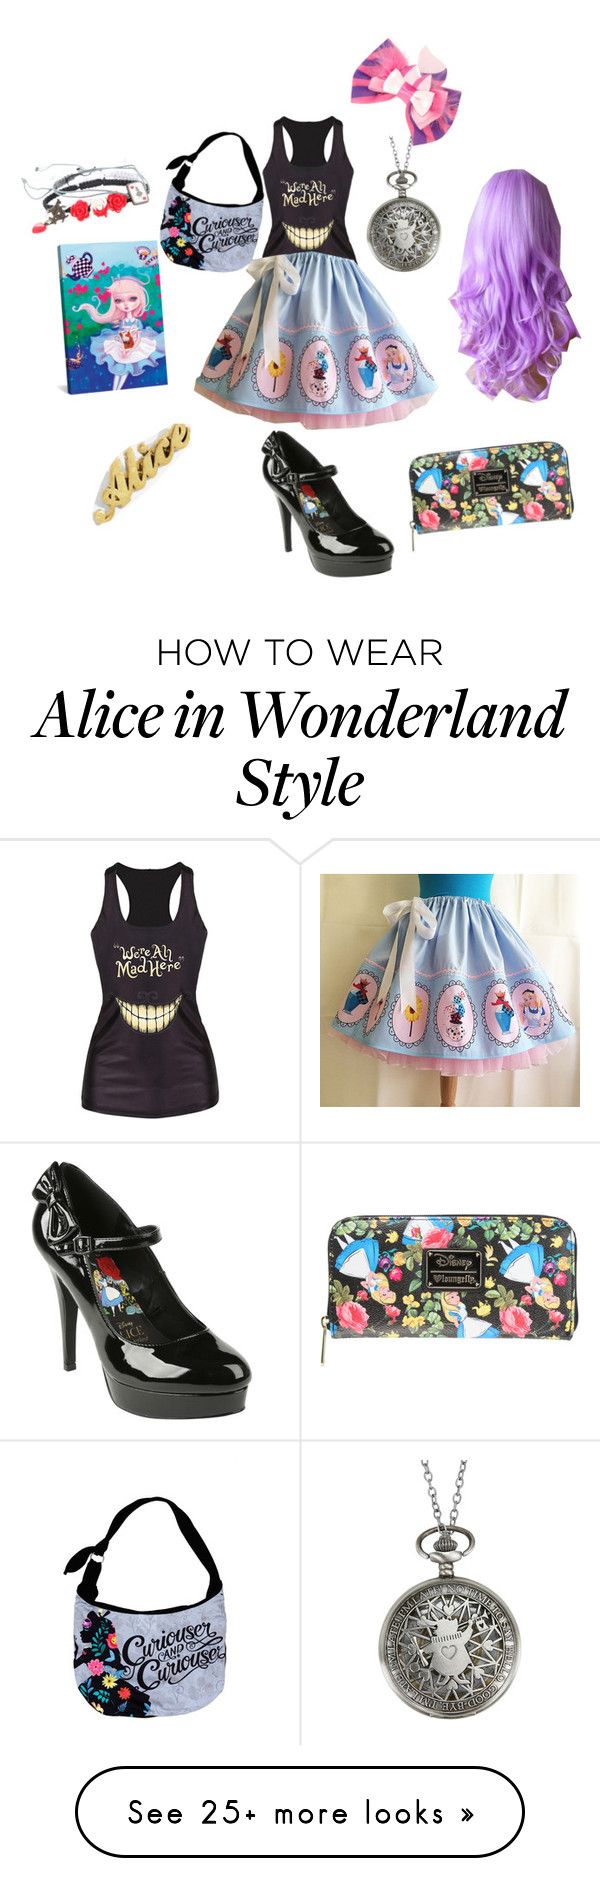 """Alice in wonderland"" by bunnybree on Polyvore featuring Disney, Hot Topic and iCanvas"